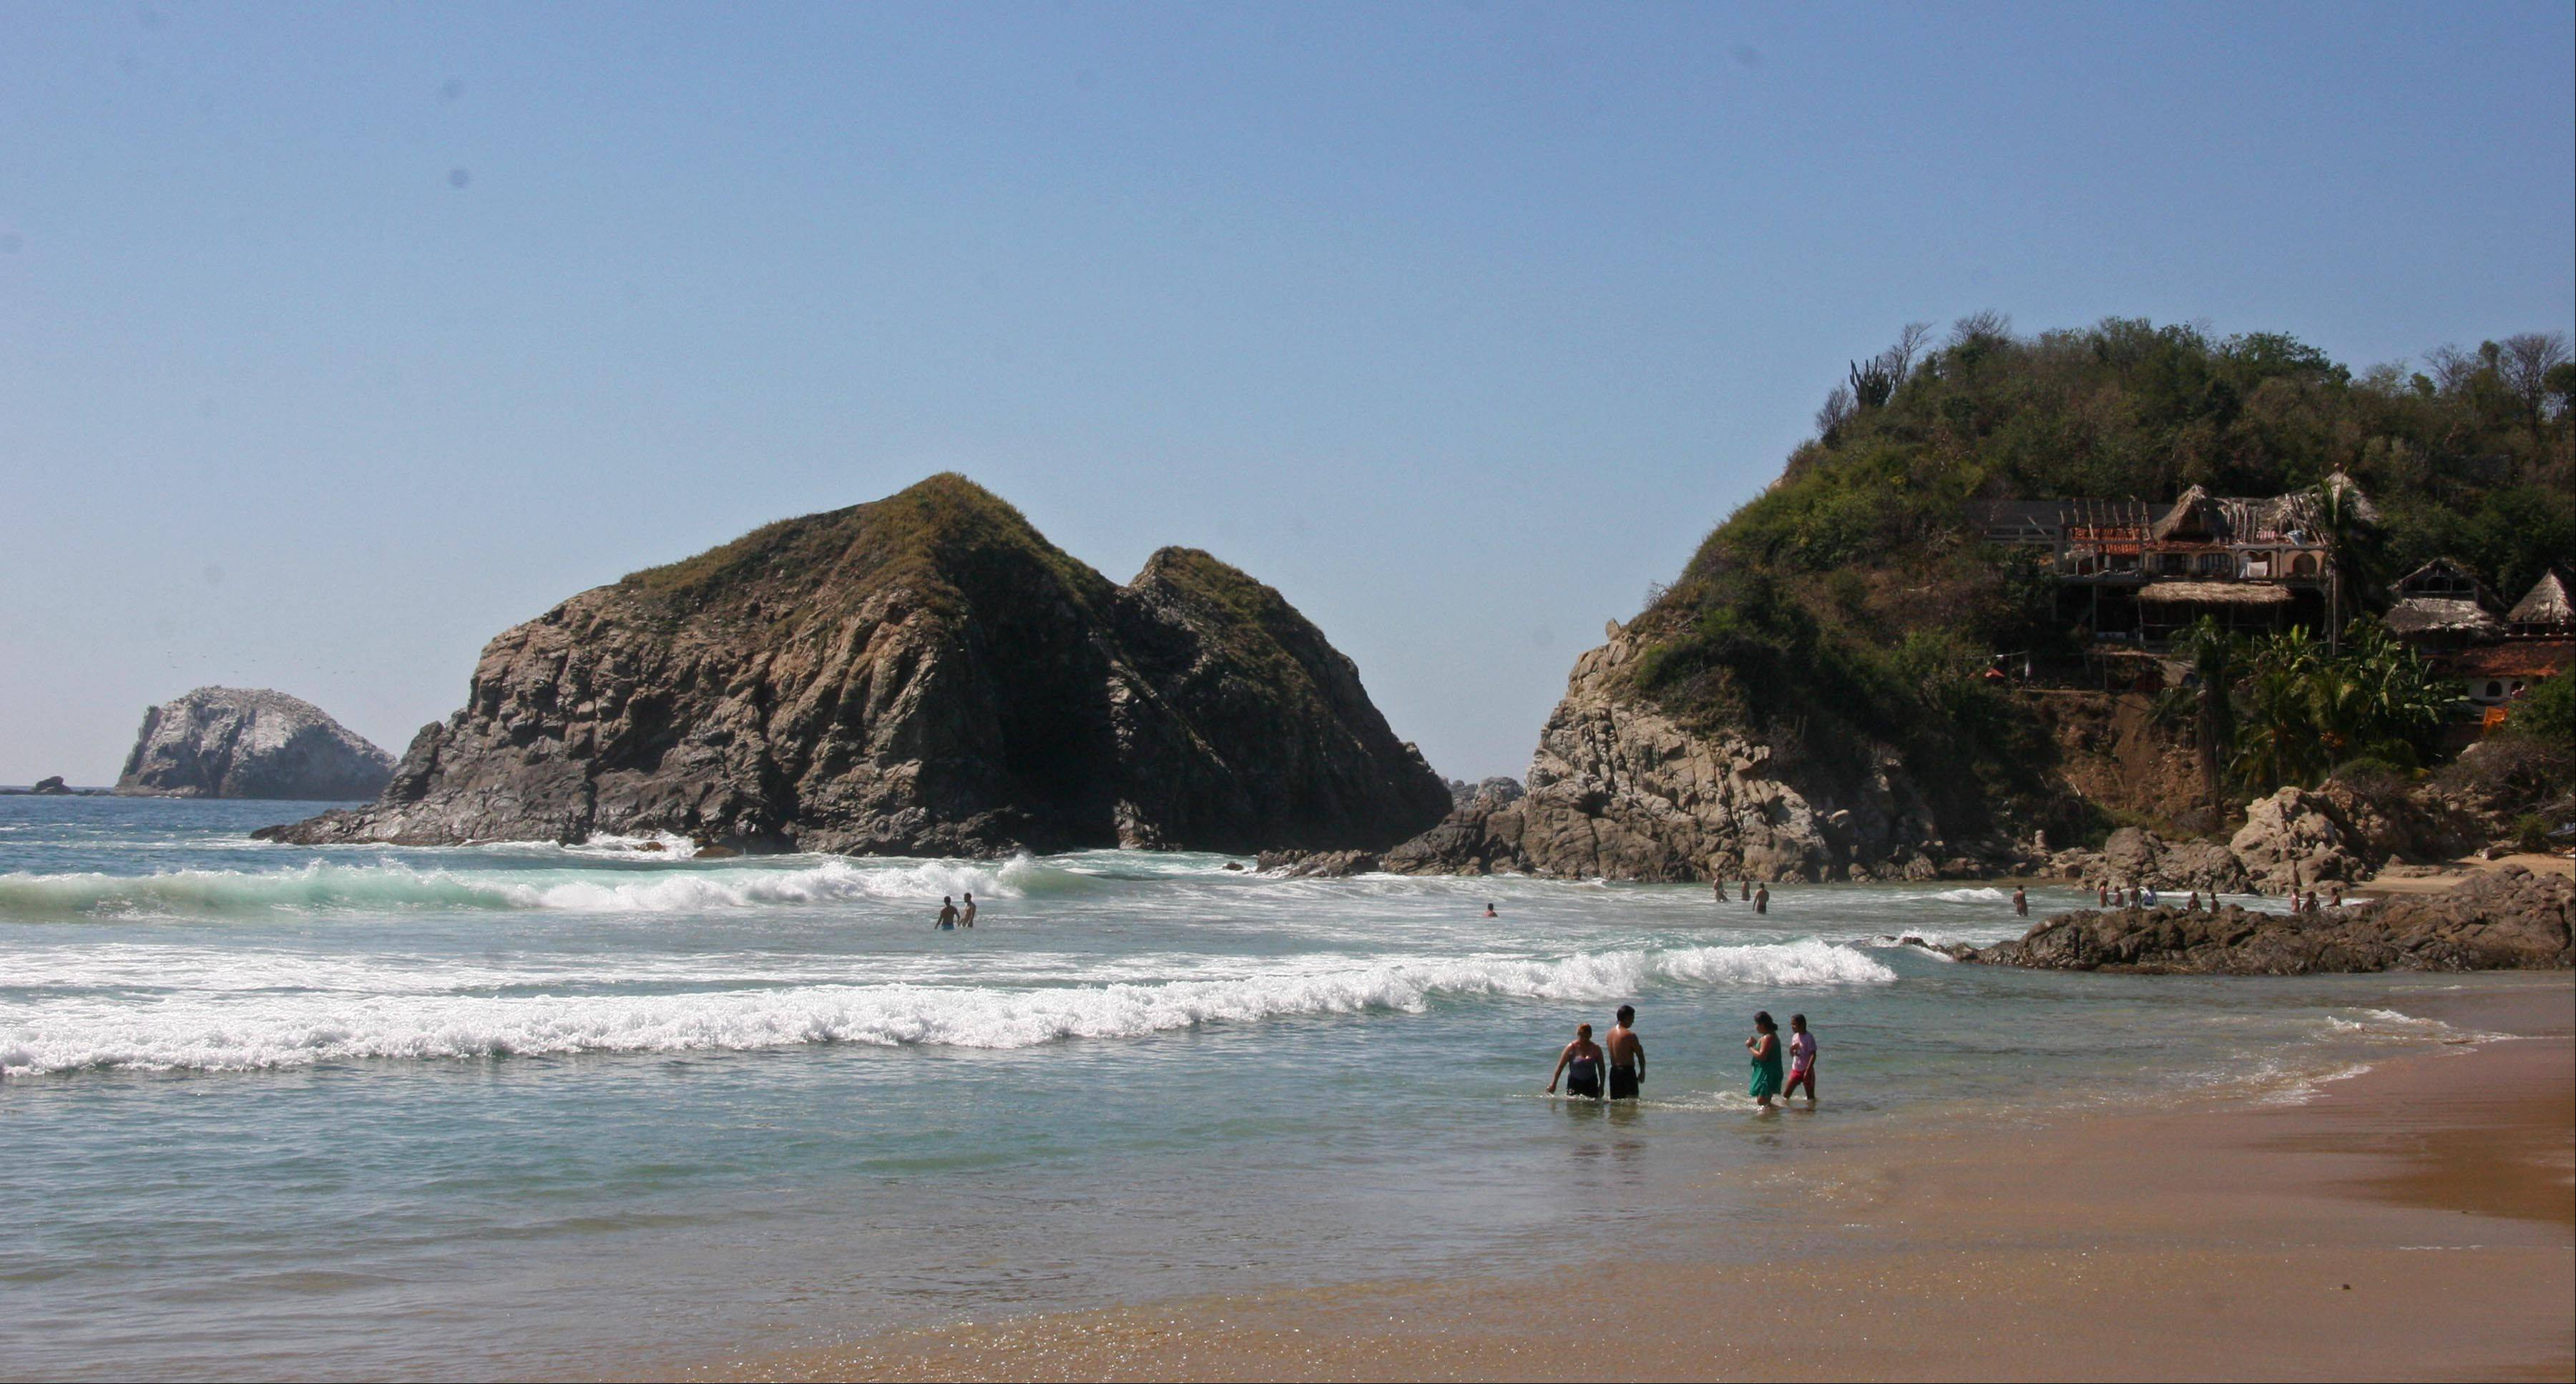 Visitors bath in the surf along the beach in Zipolite.